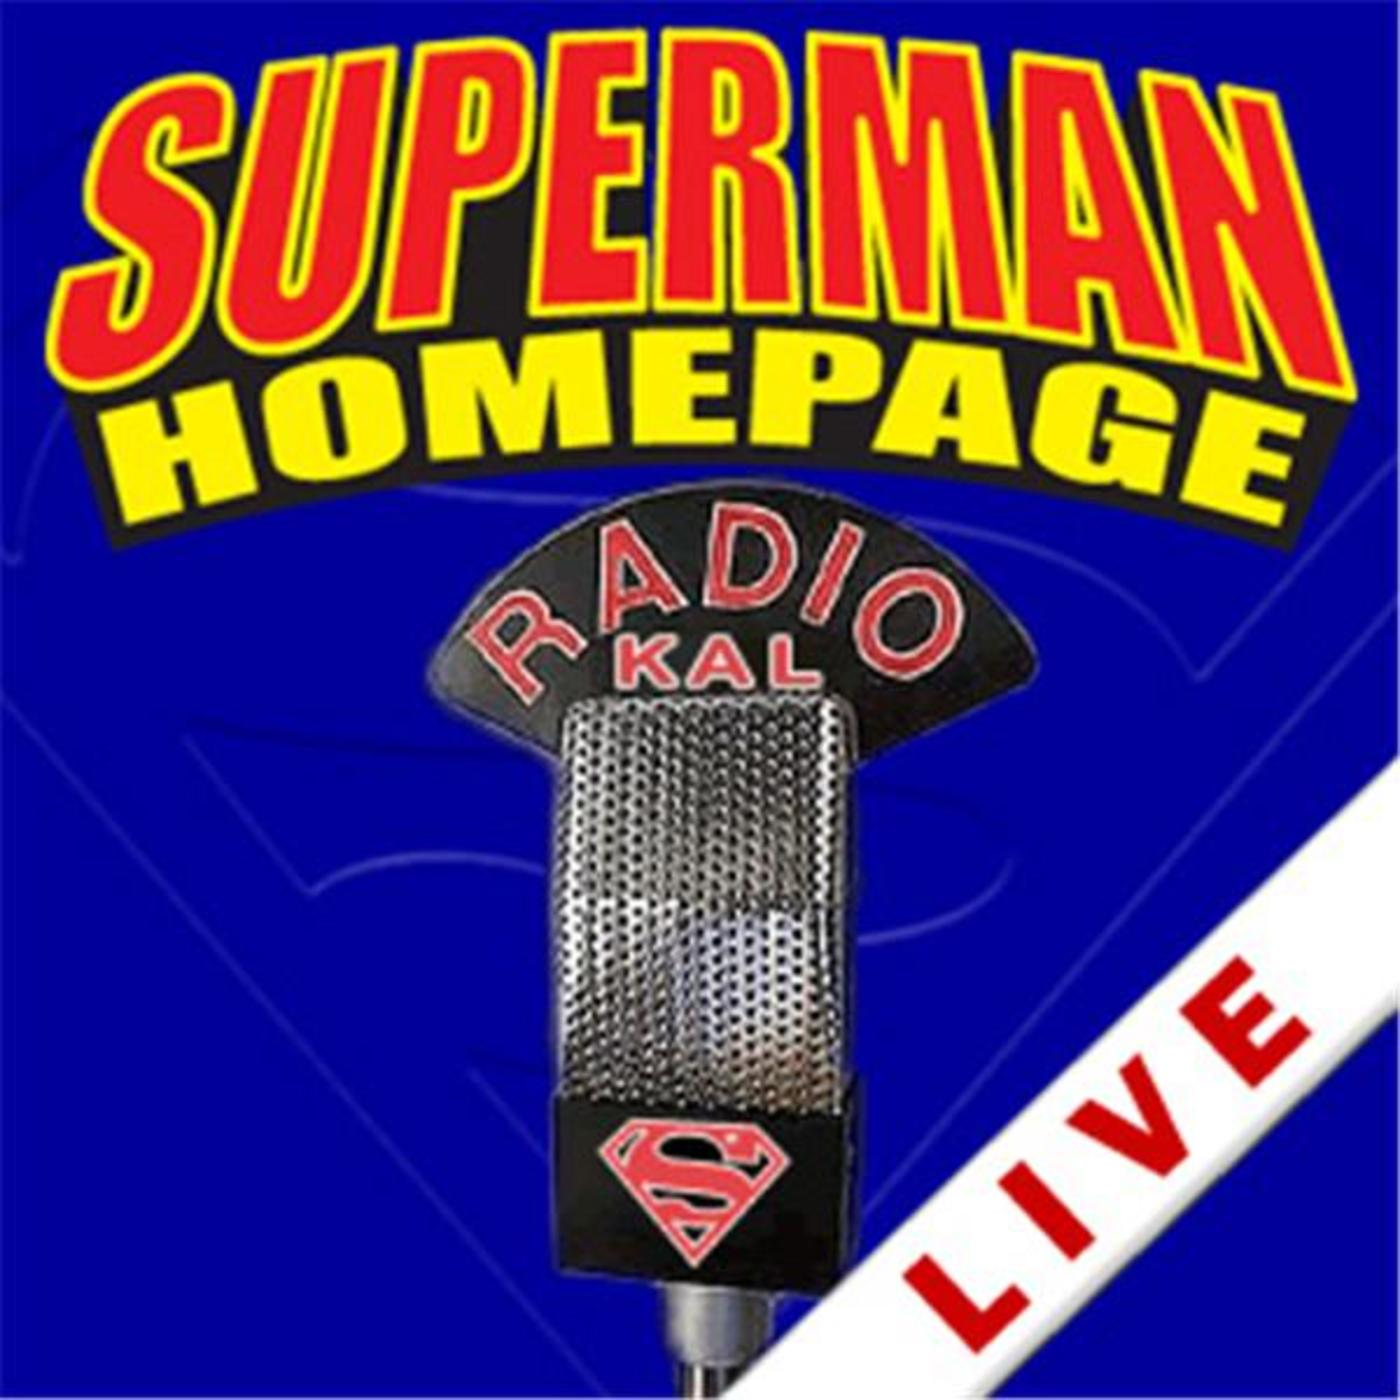 Superman Homepage - Radio KAL Live